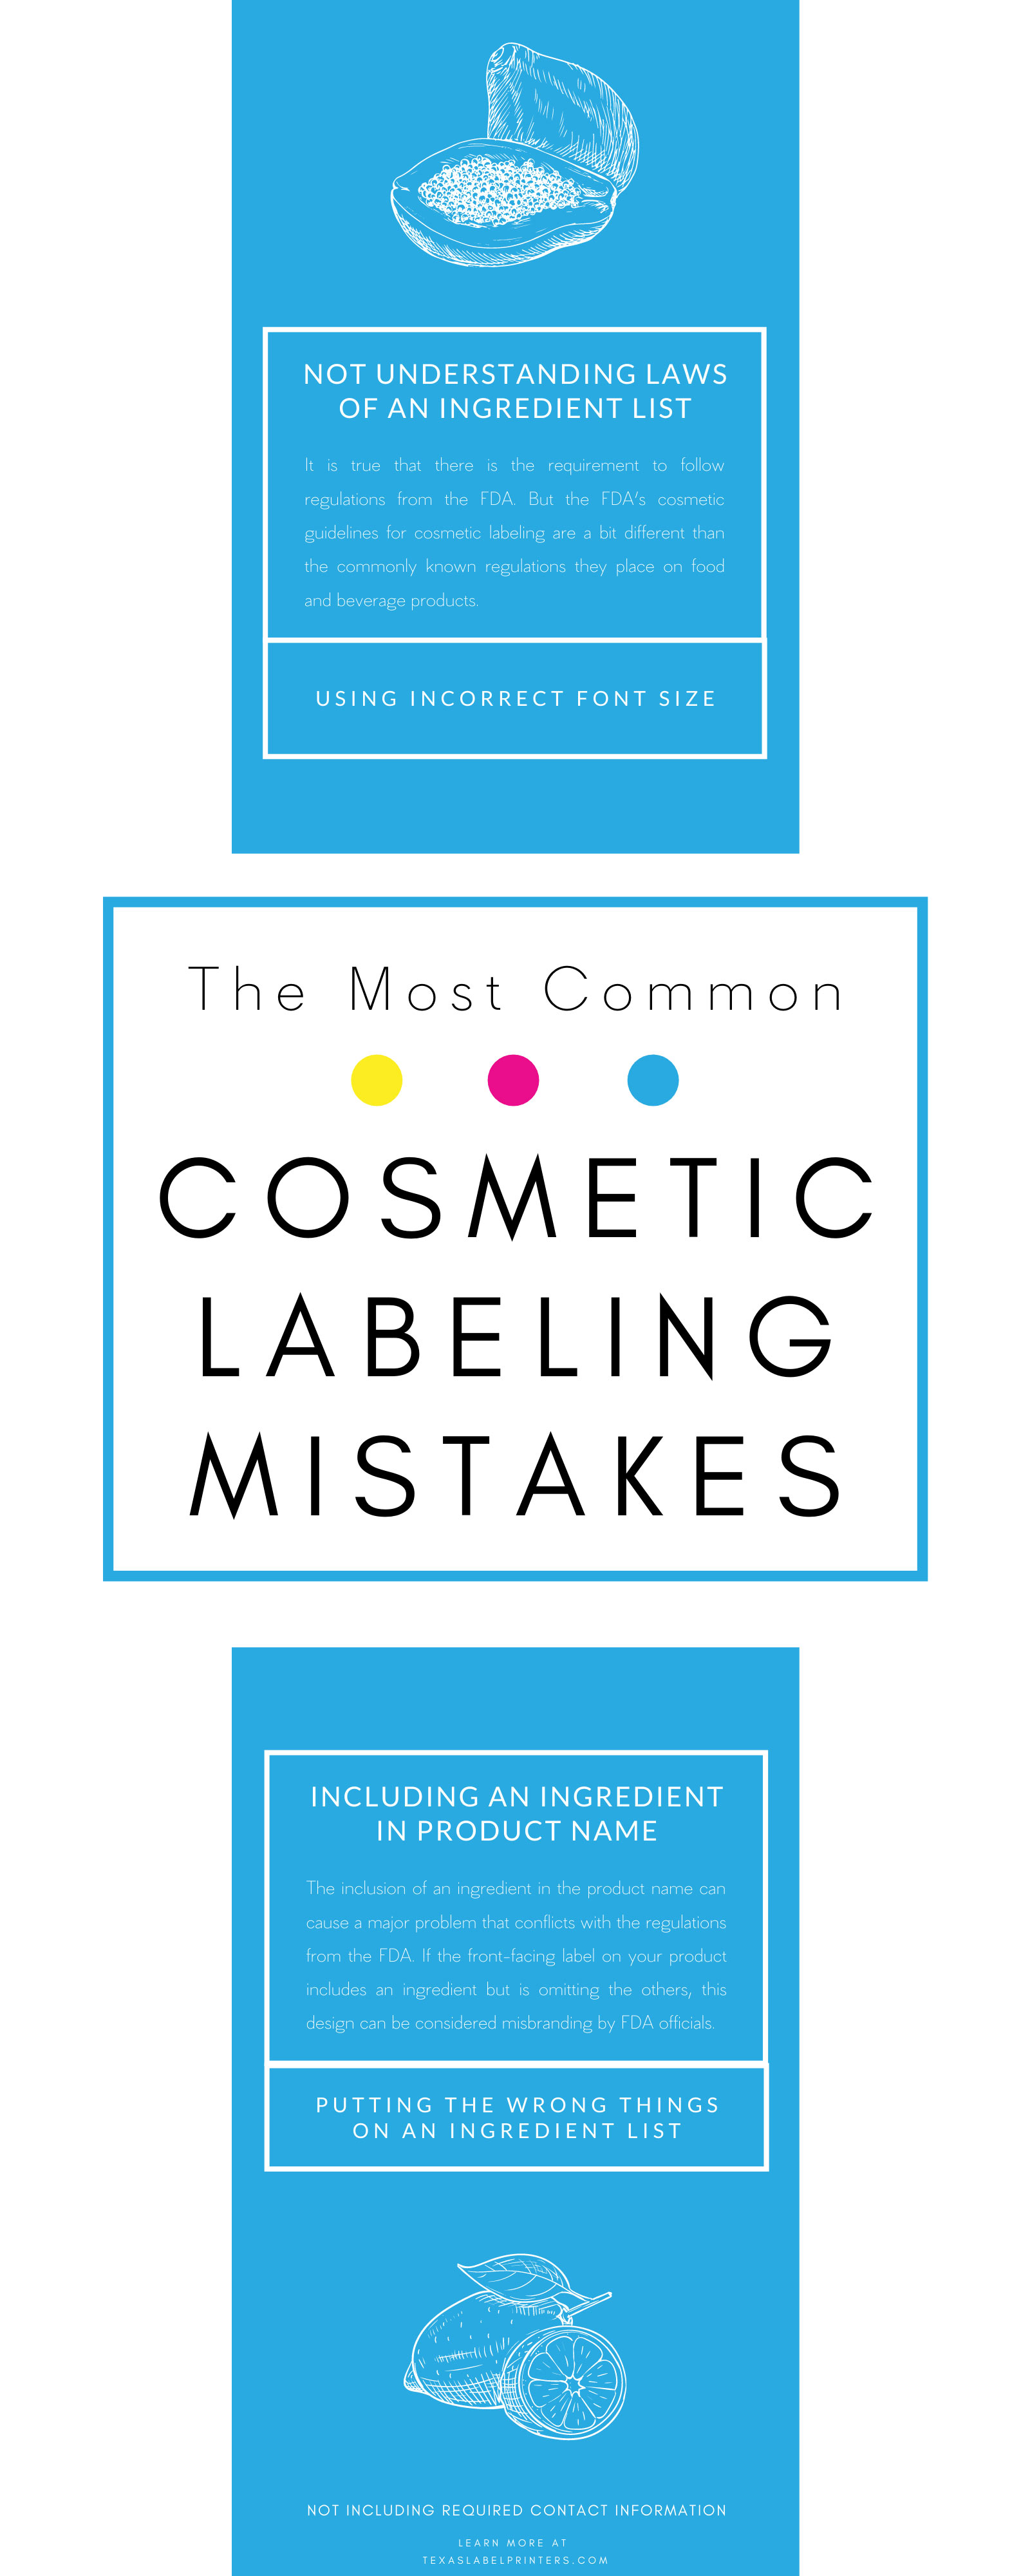 The Most Common Cosmetic Labeling Mistakes Infographic